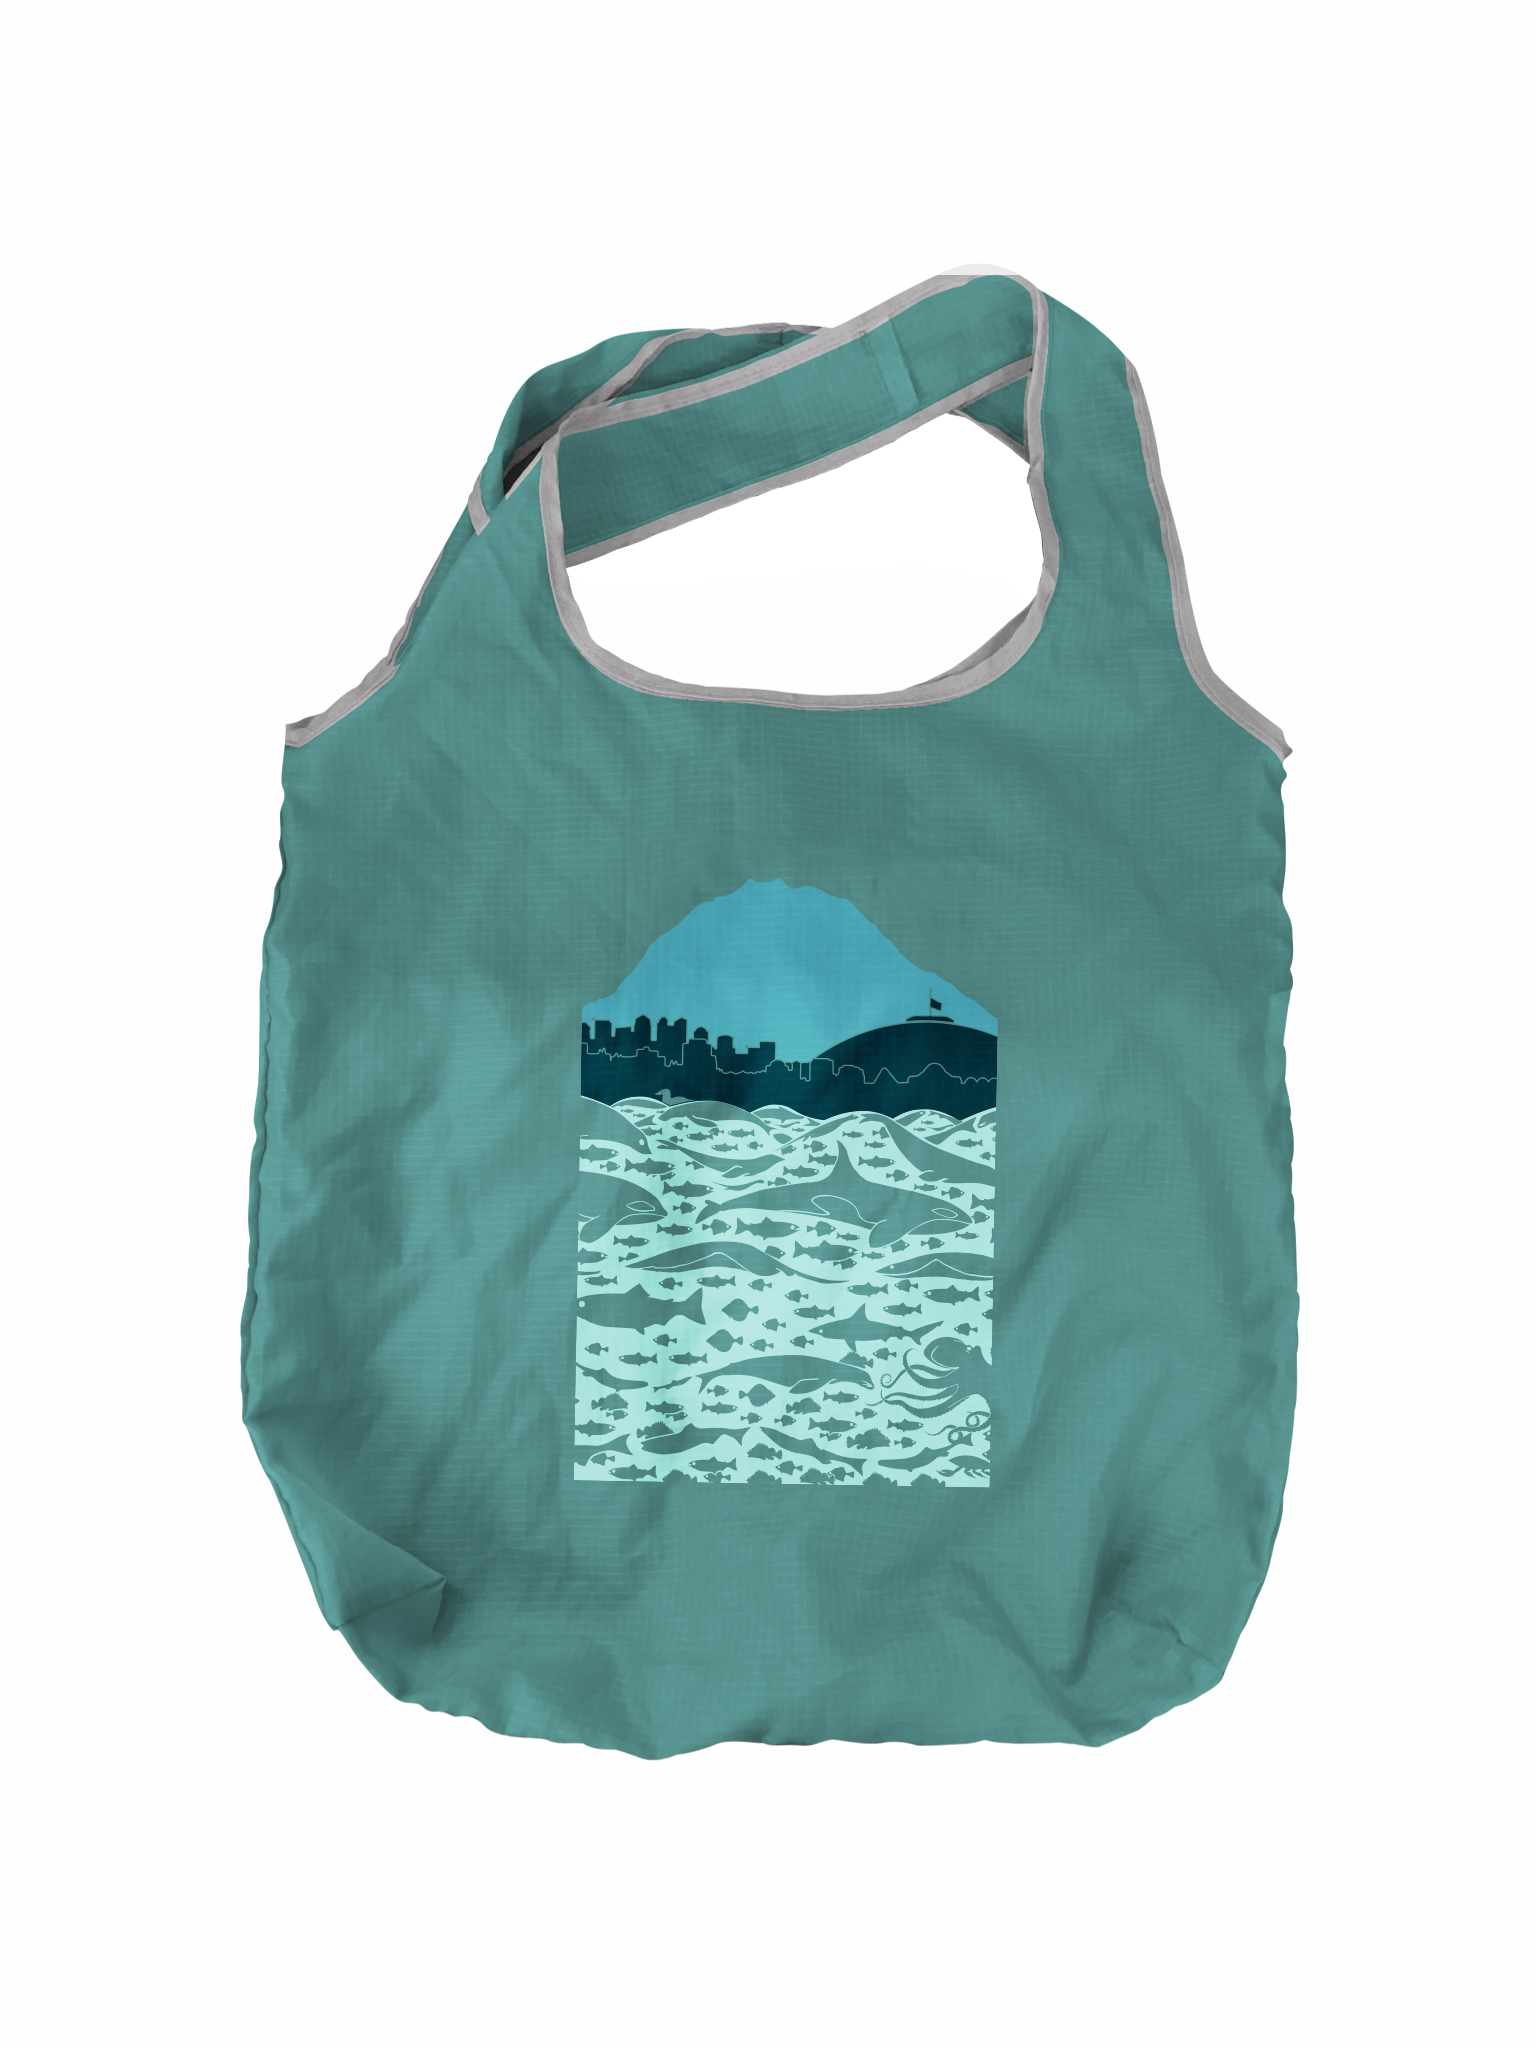 Reusable bags available